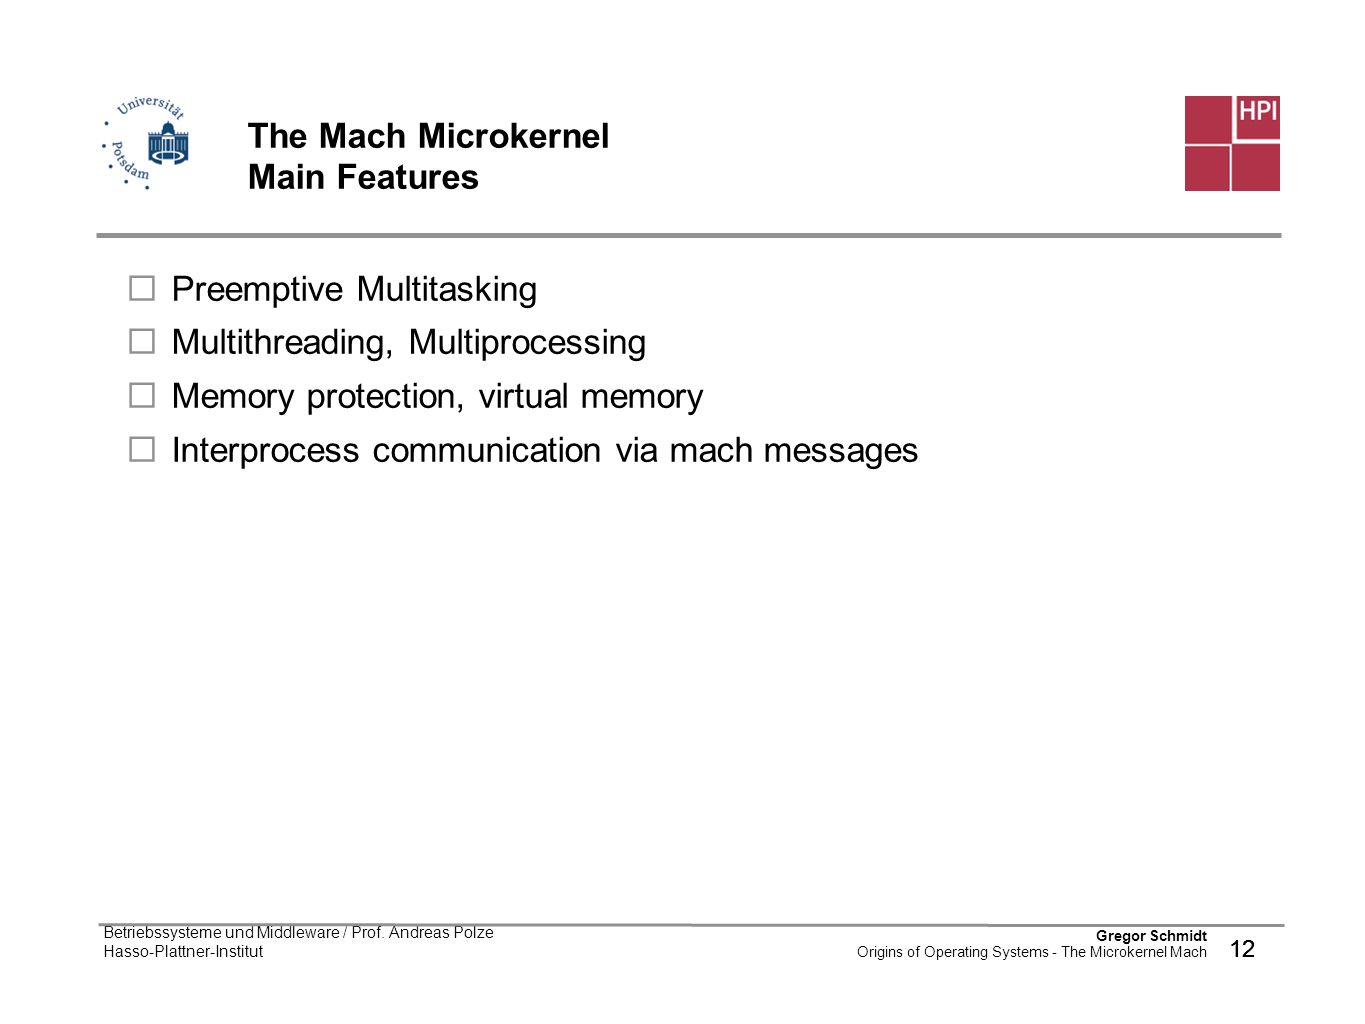 The Mach Microkernel Main Features